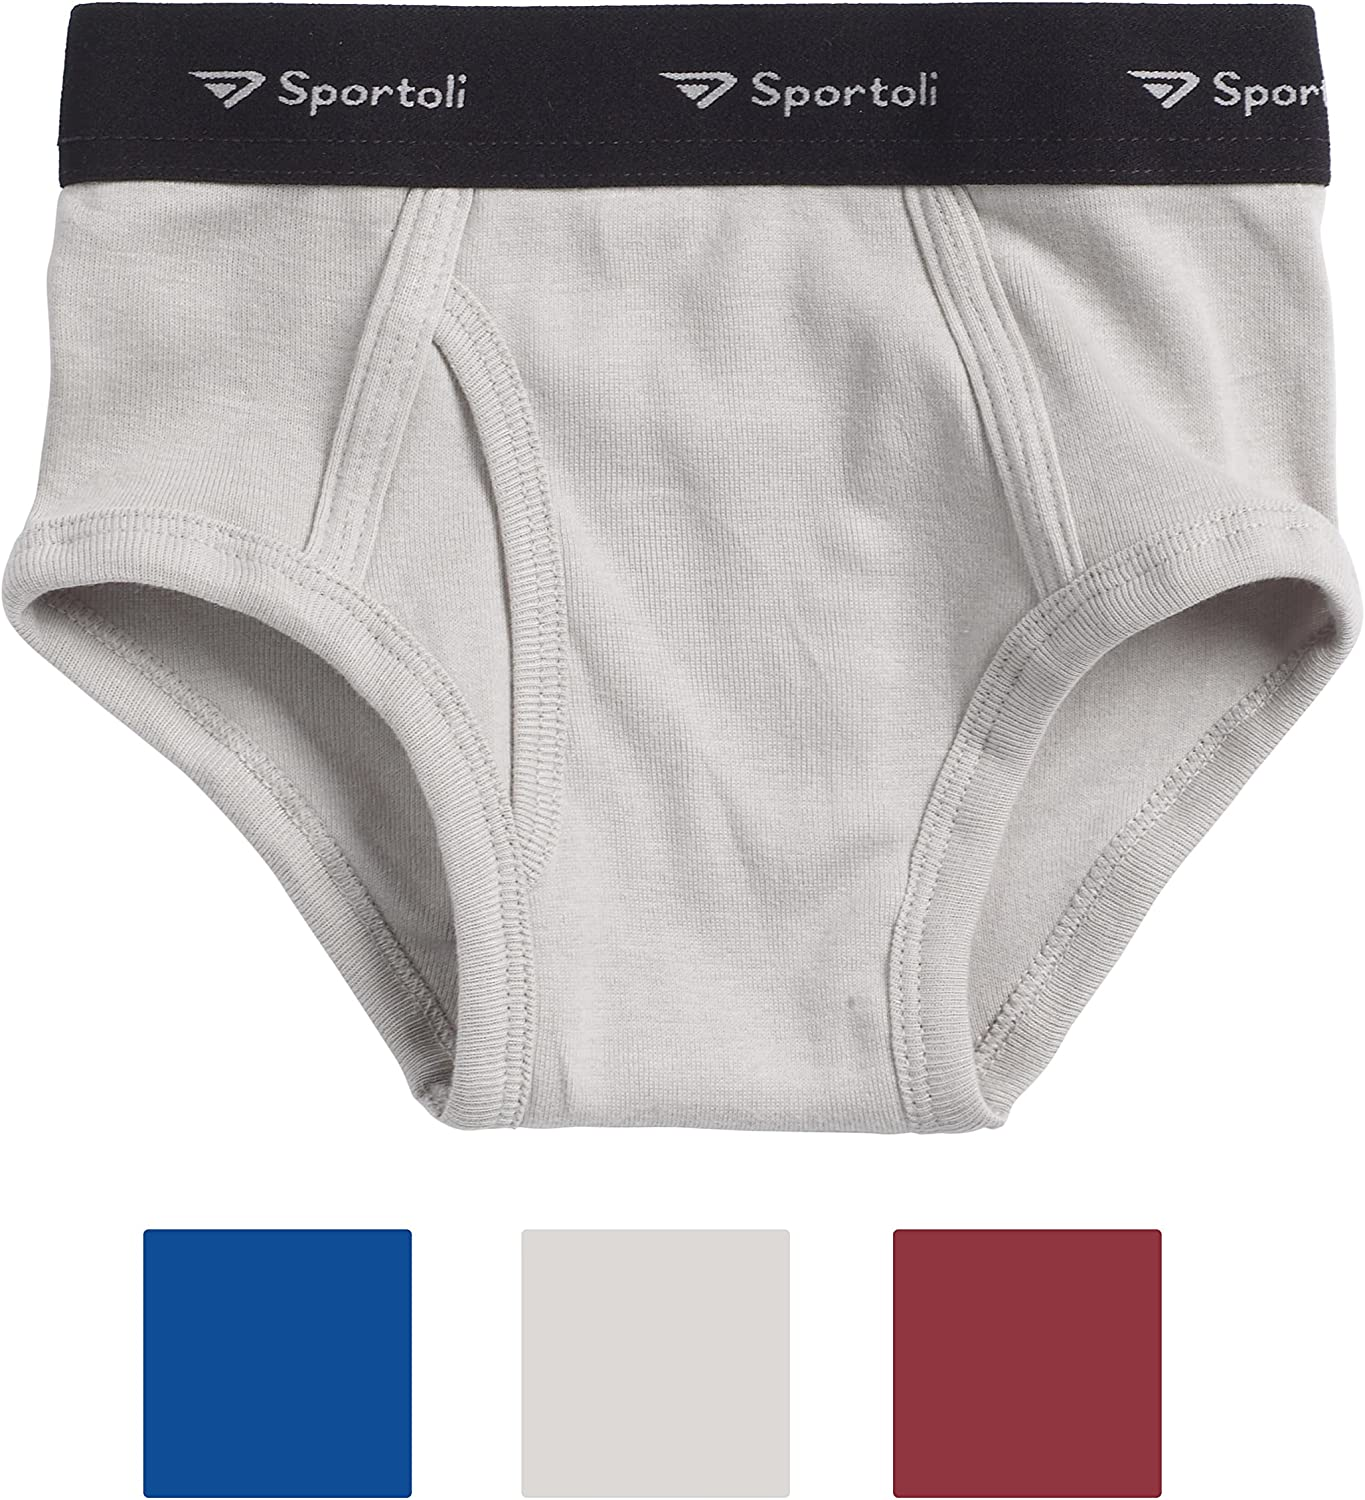 Sportoli Boys 3 Pack 100/% Cotton Tagless White and Assorted Colors Briefs